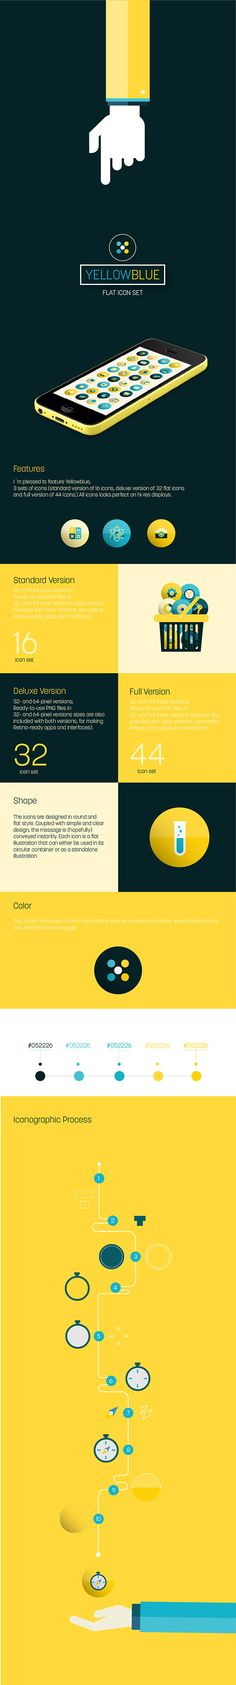 YellowBlue / Flat Icon Set + Landing page by Martín Liveratore, via Behance